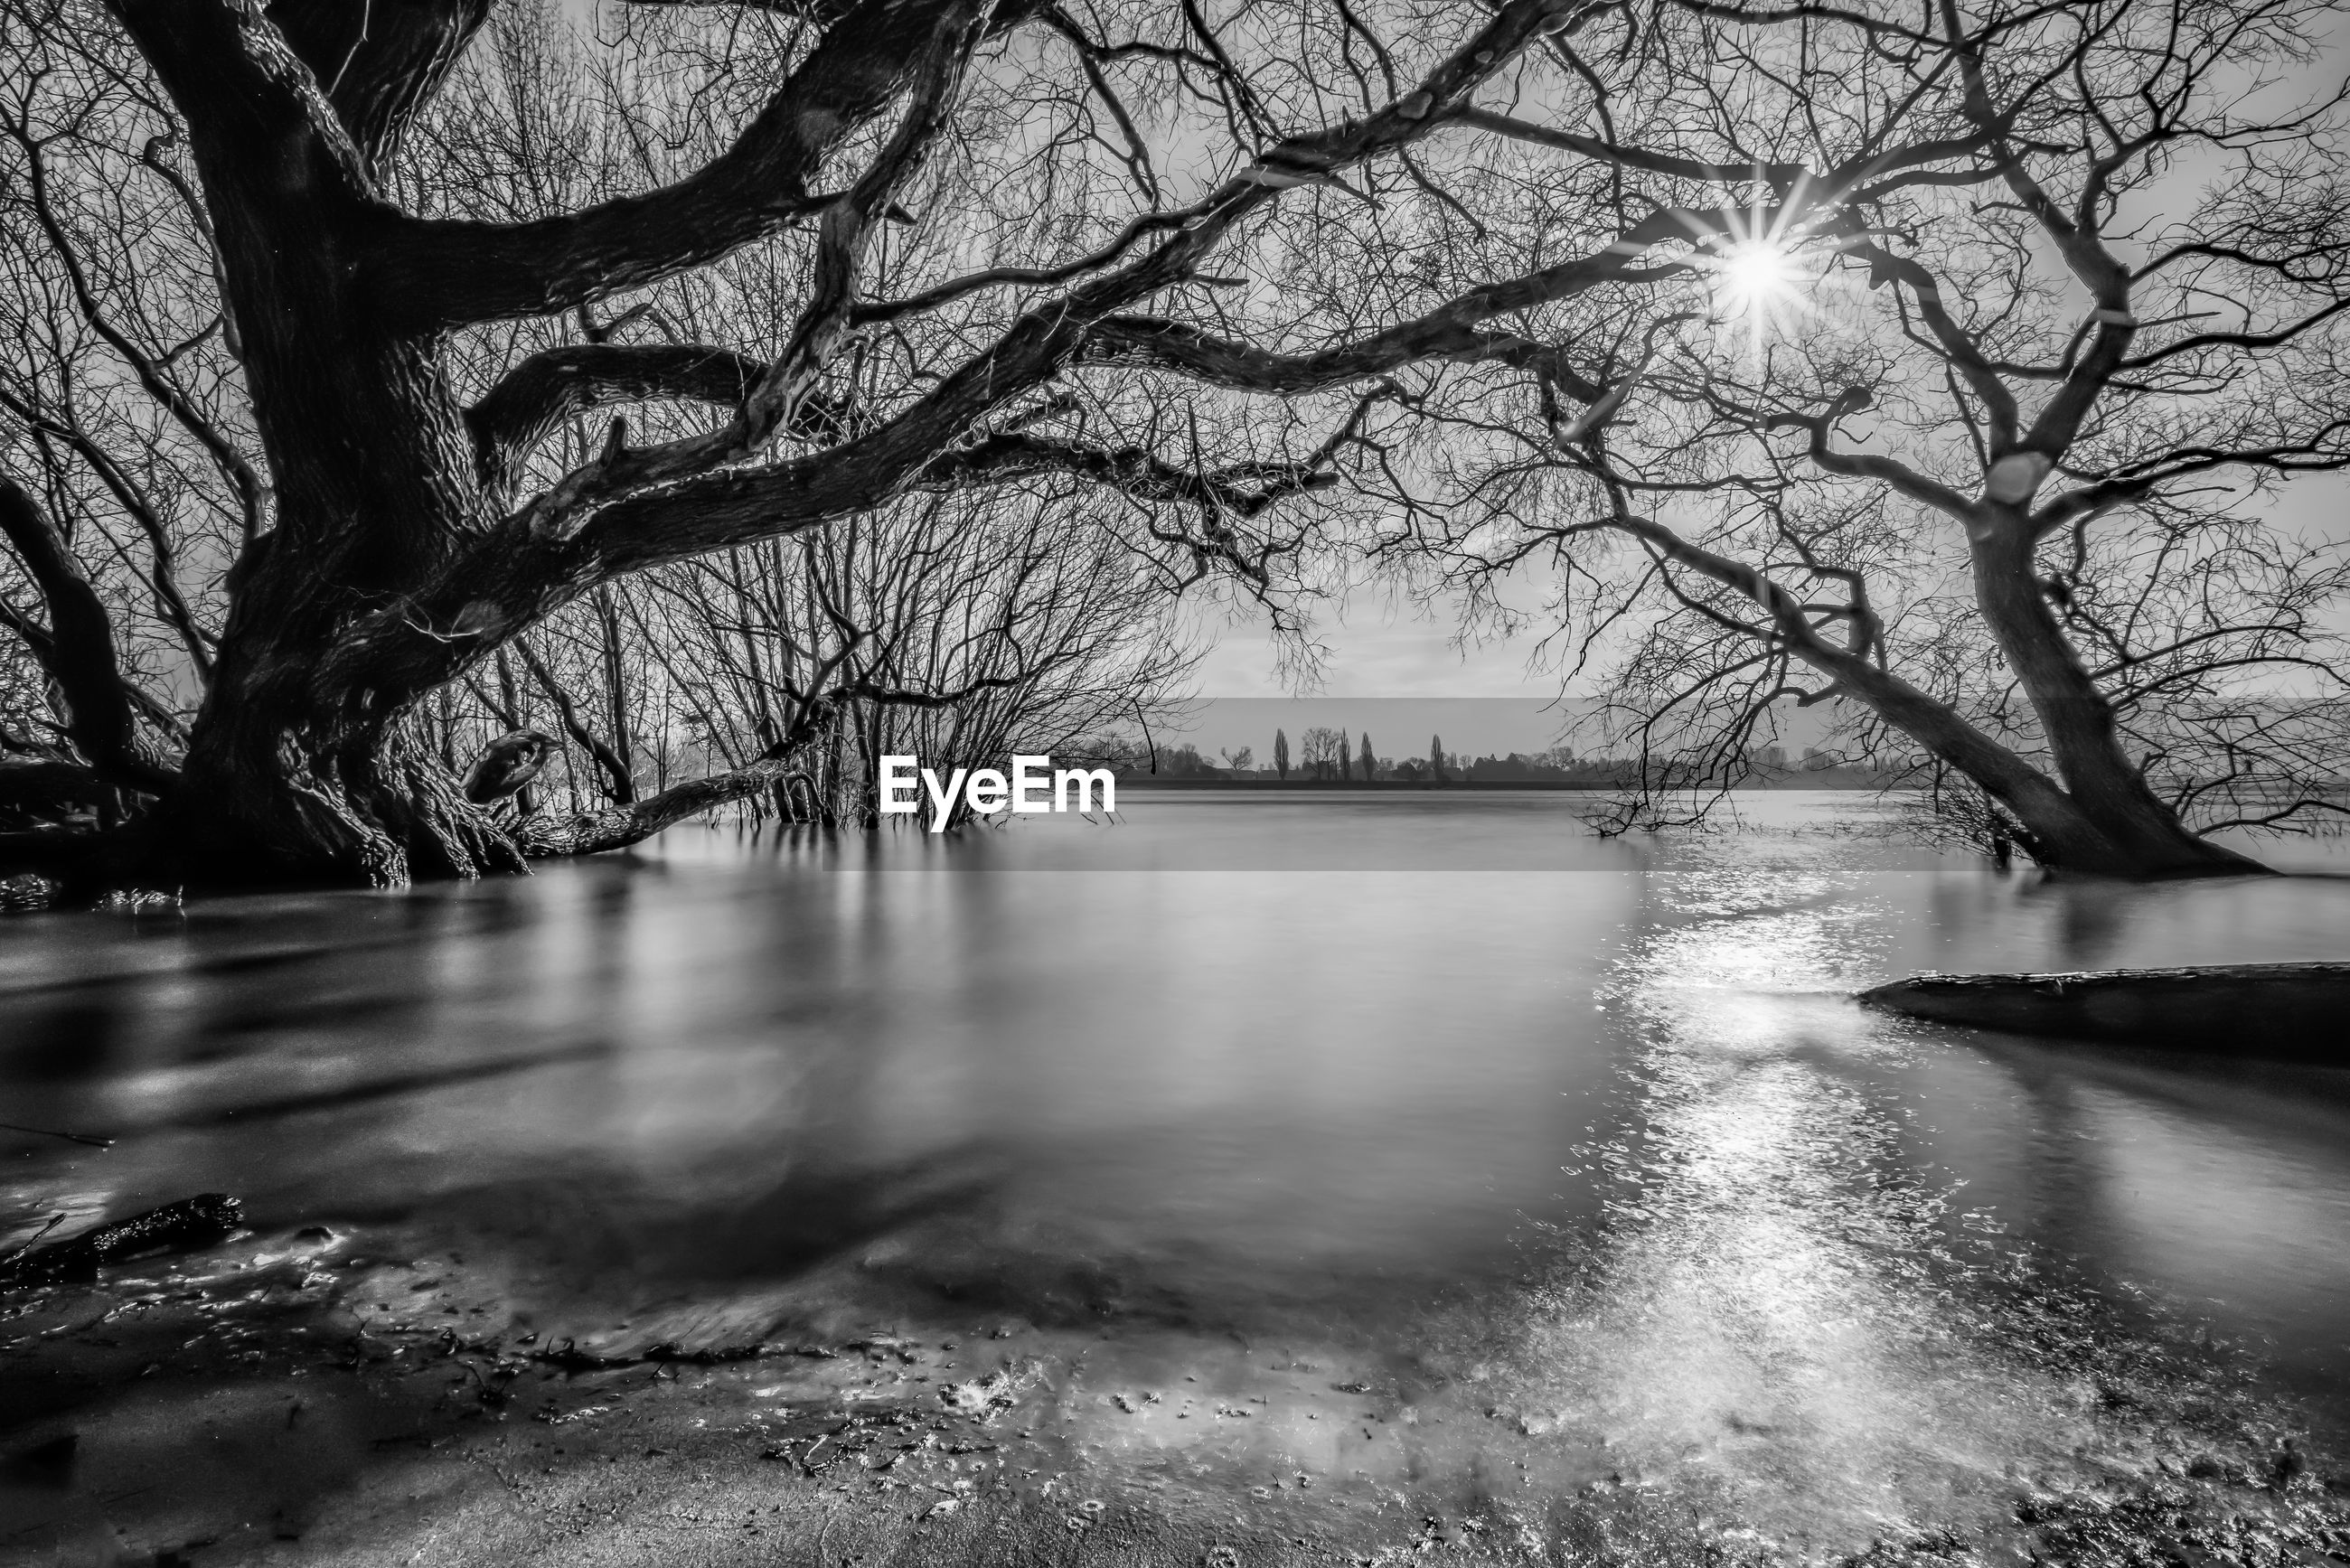 SCENIC VIEW OF BARE TREES BY RIVER DURING WINTER